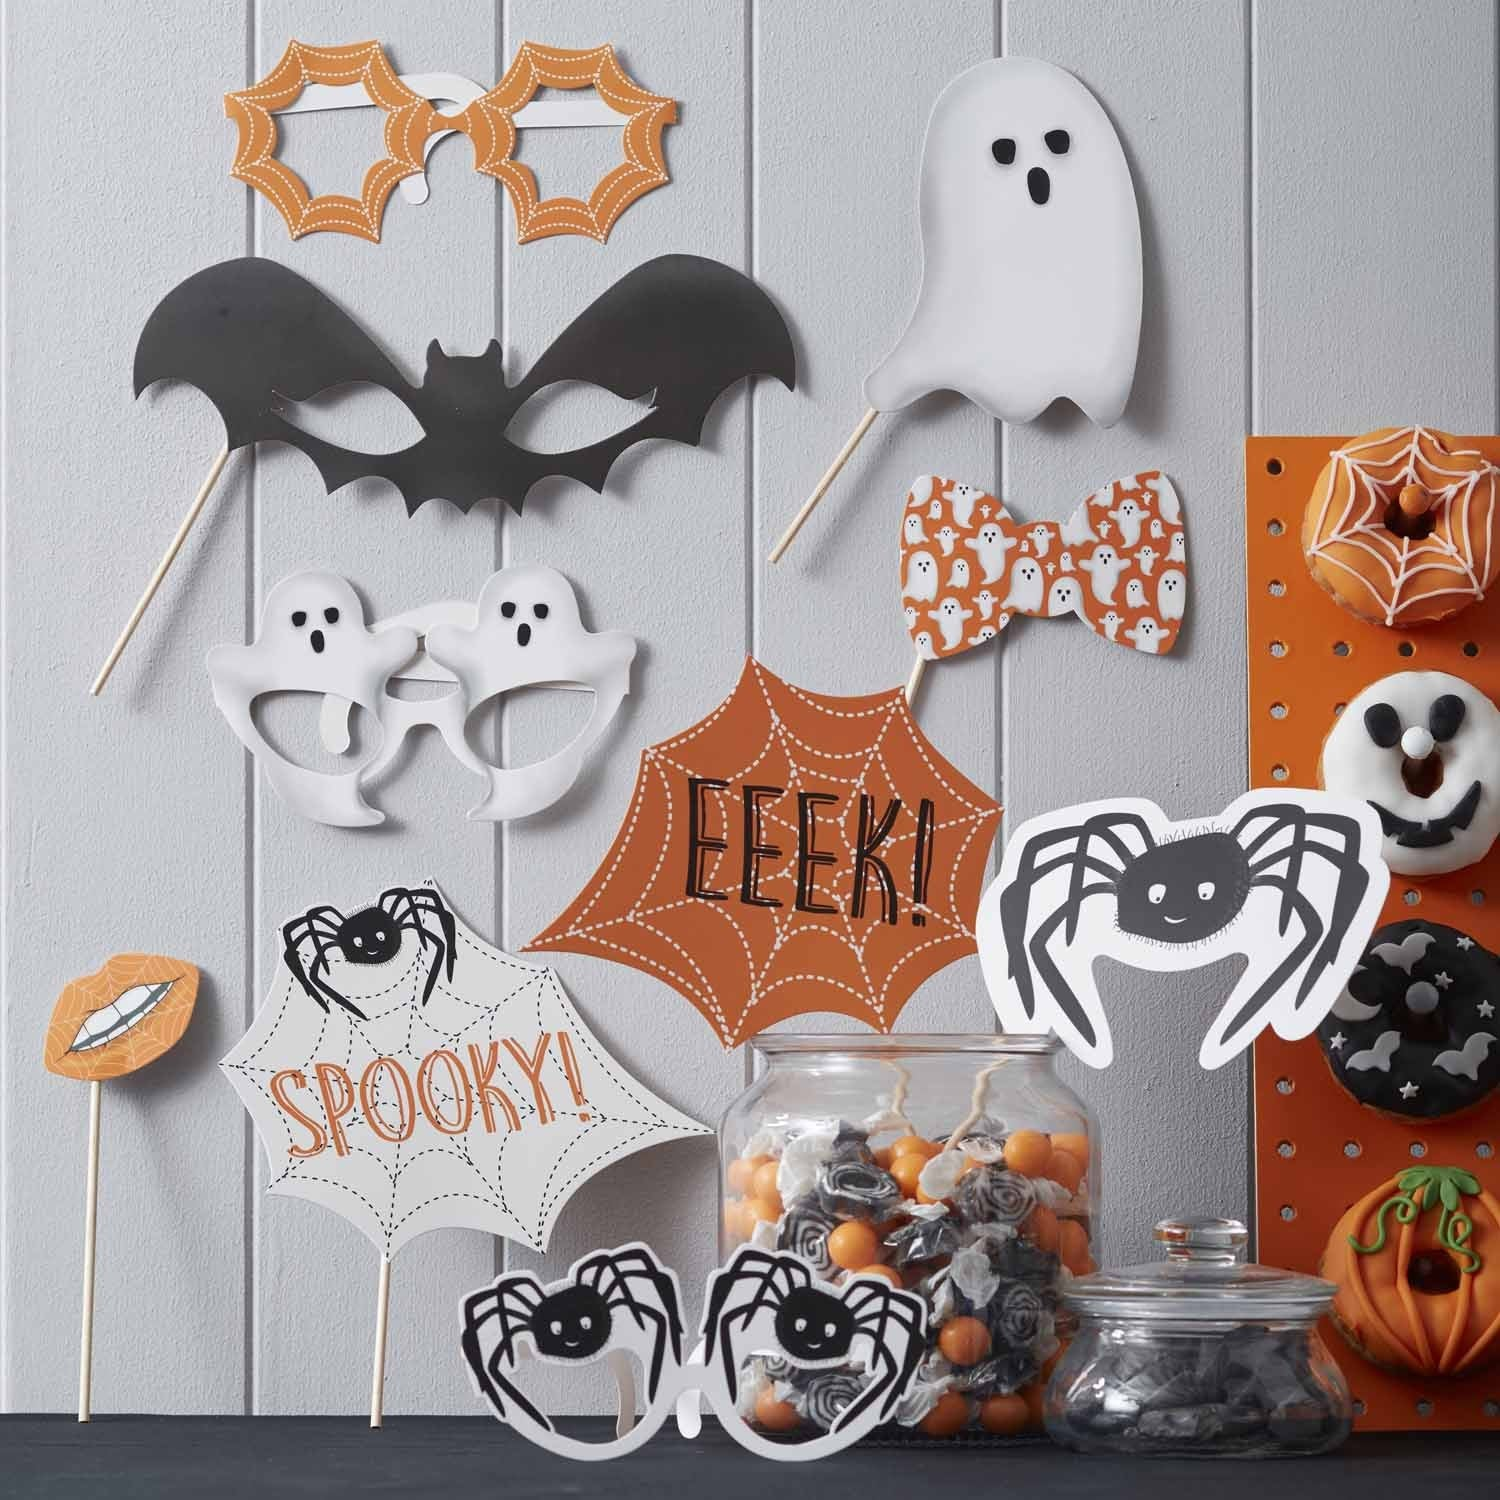 SPOOKY SPIDER PHOTO BOOTH PROPS from Flingers Party World Bristol Harbourside who offer a huge range of fancy dress costumes and partyware items